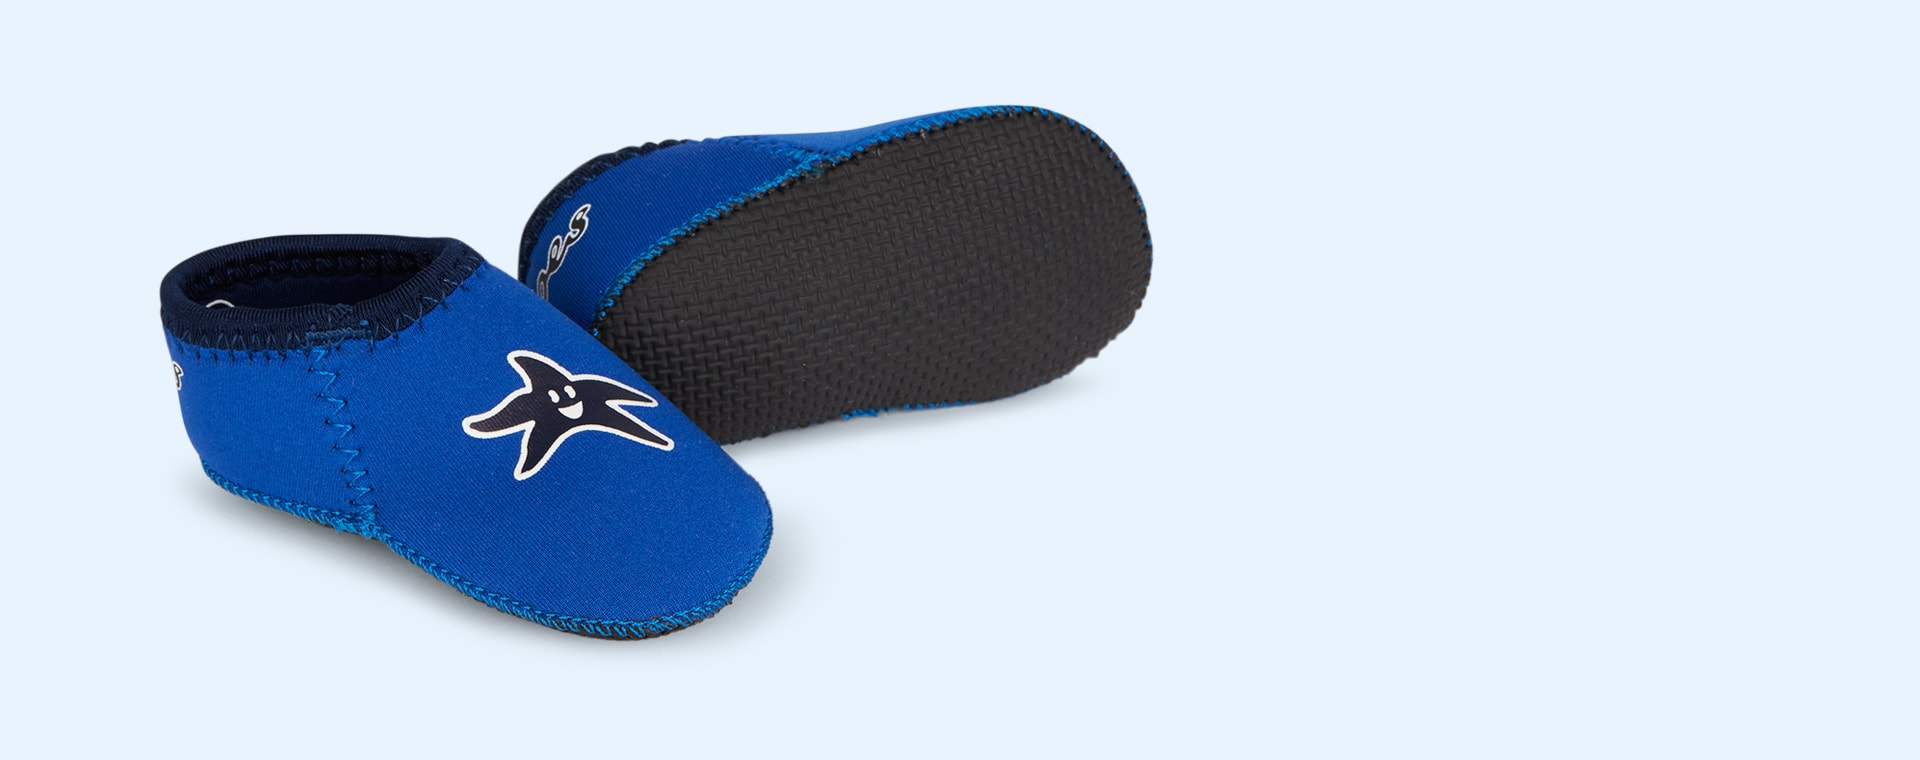 Blue Sunproof Shore Feet Beach Padders